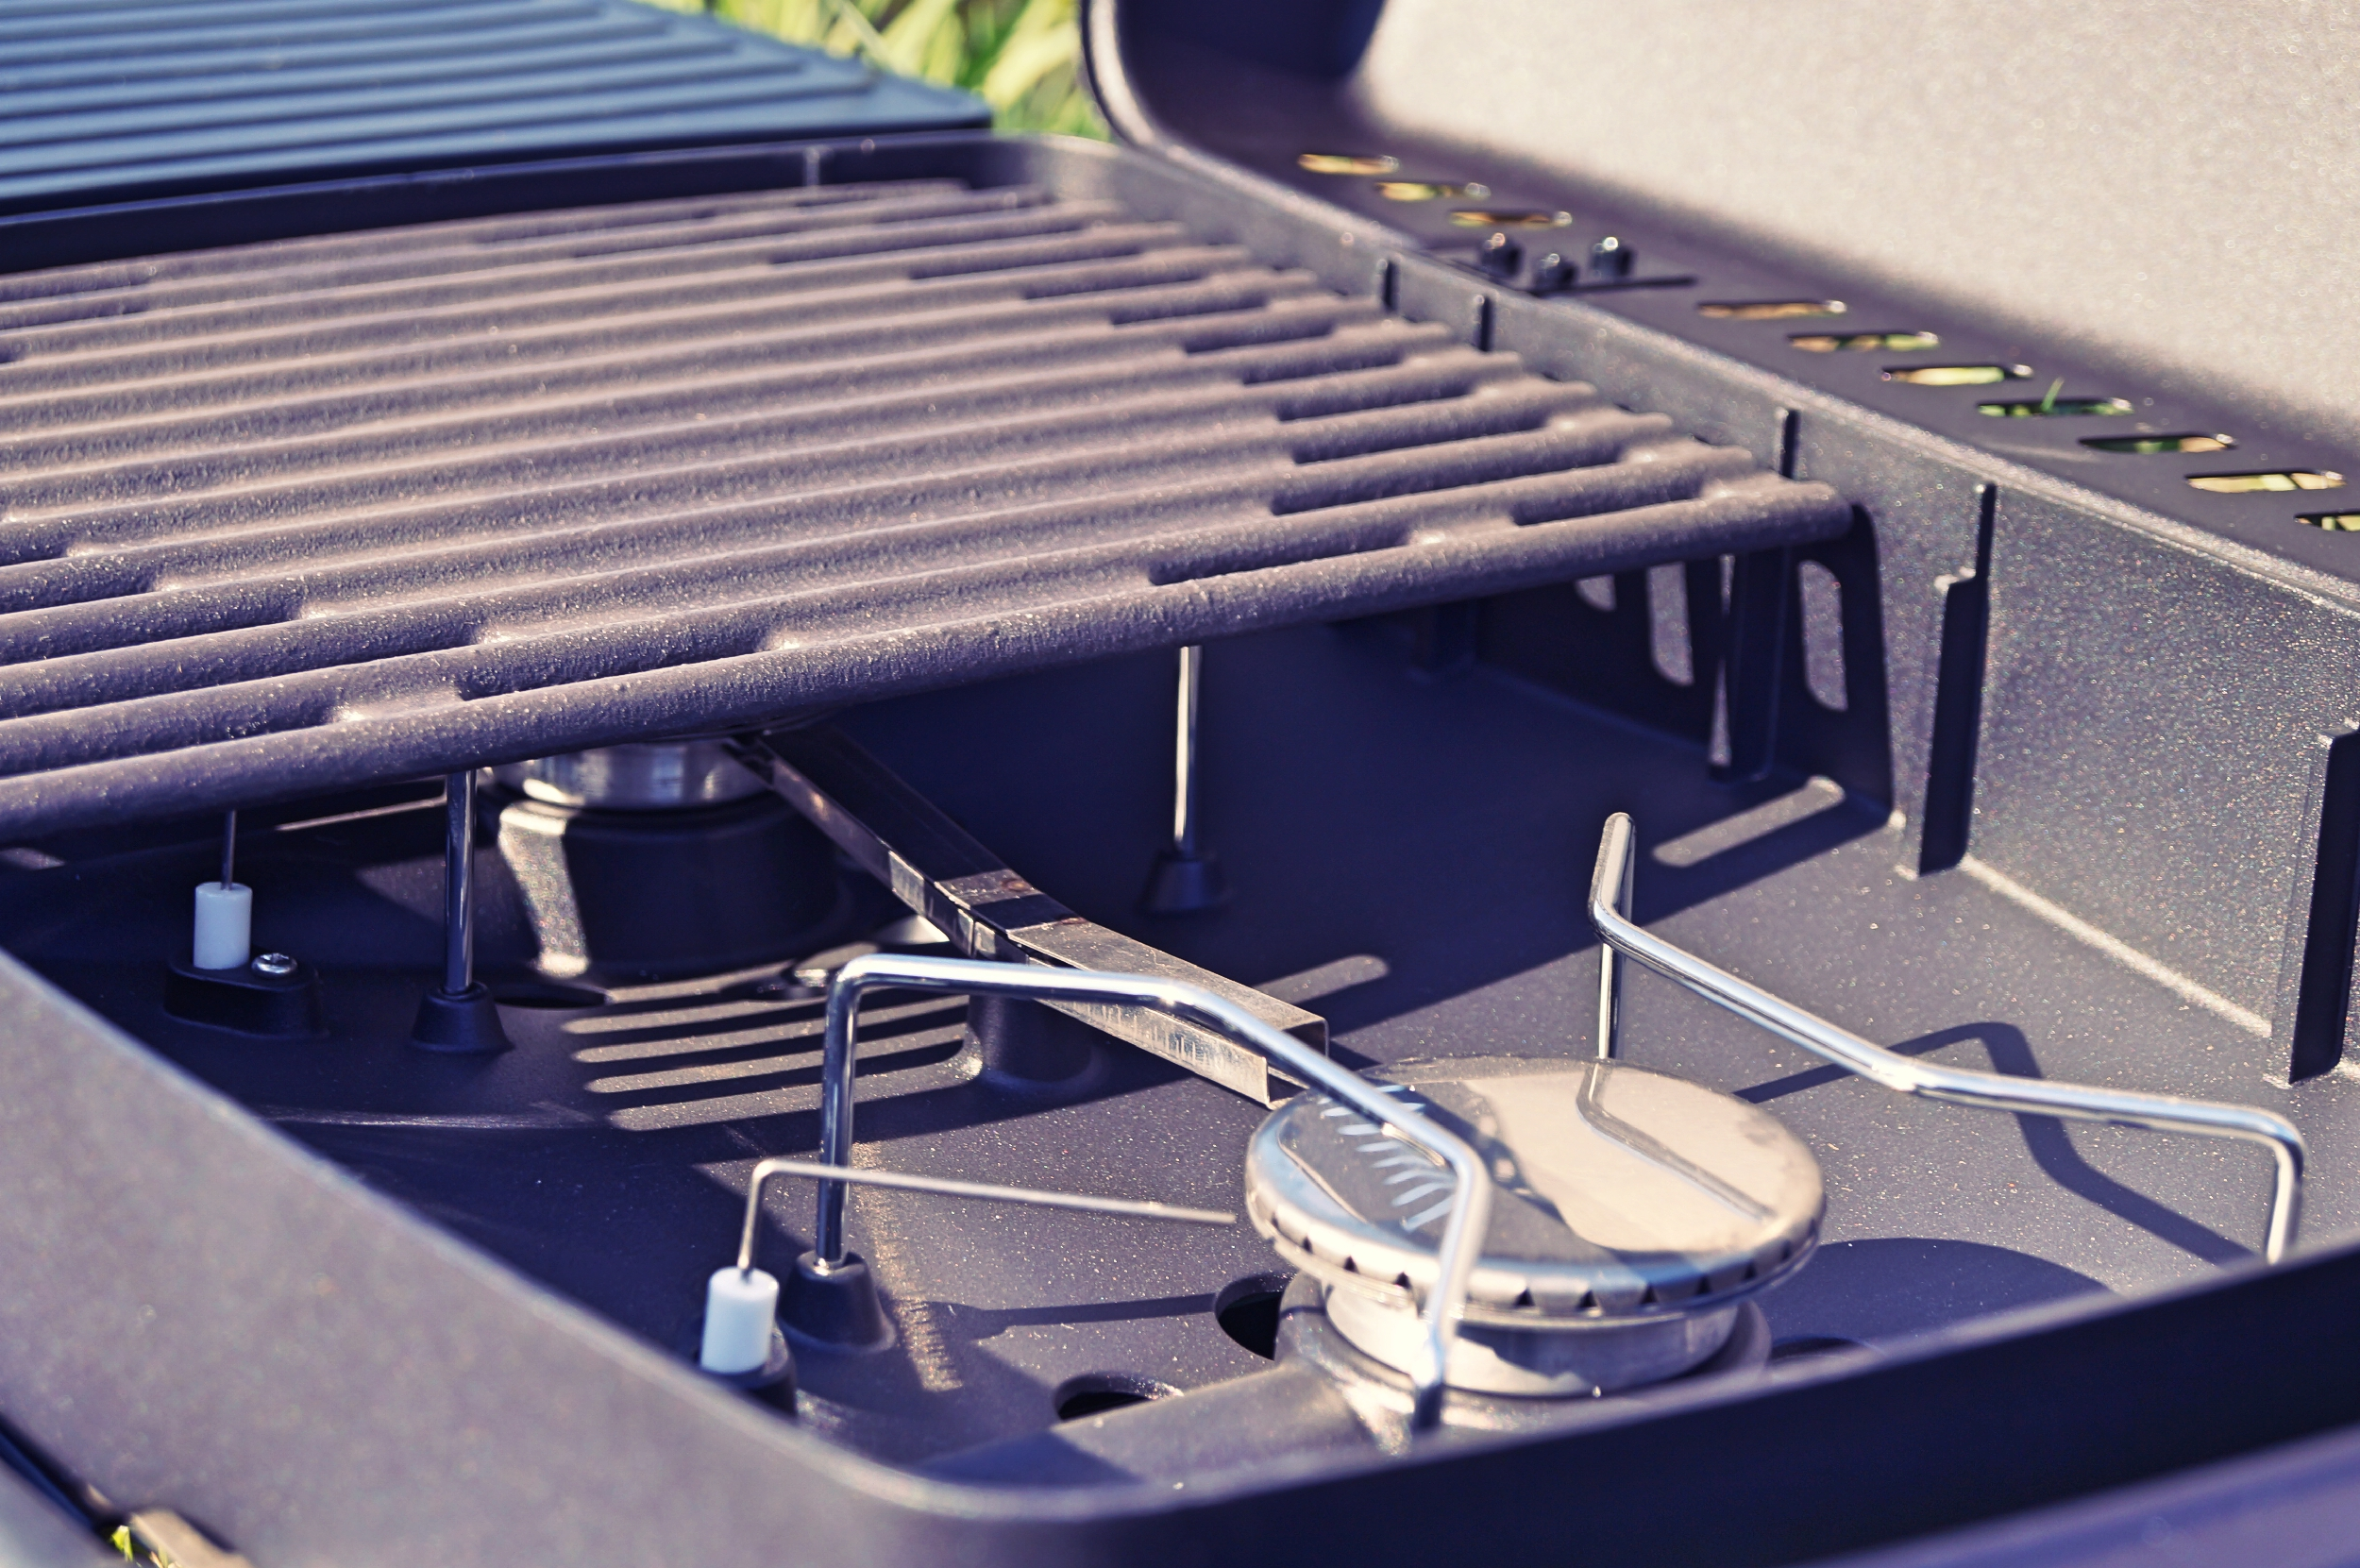 Enders Urban Gasgrill 3 In 1 : Enders urban grill ein erster praxistest